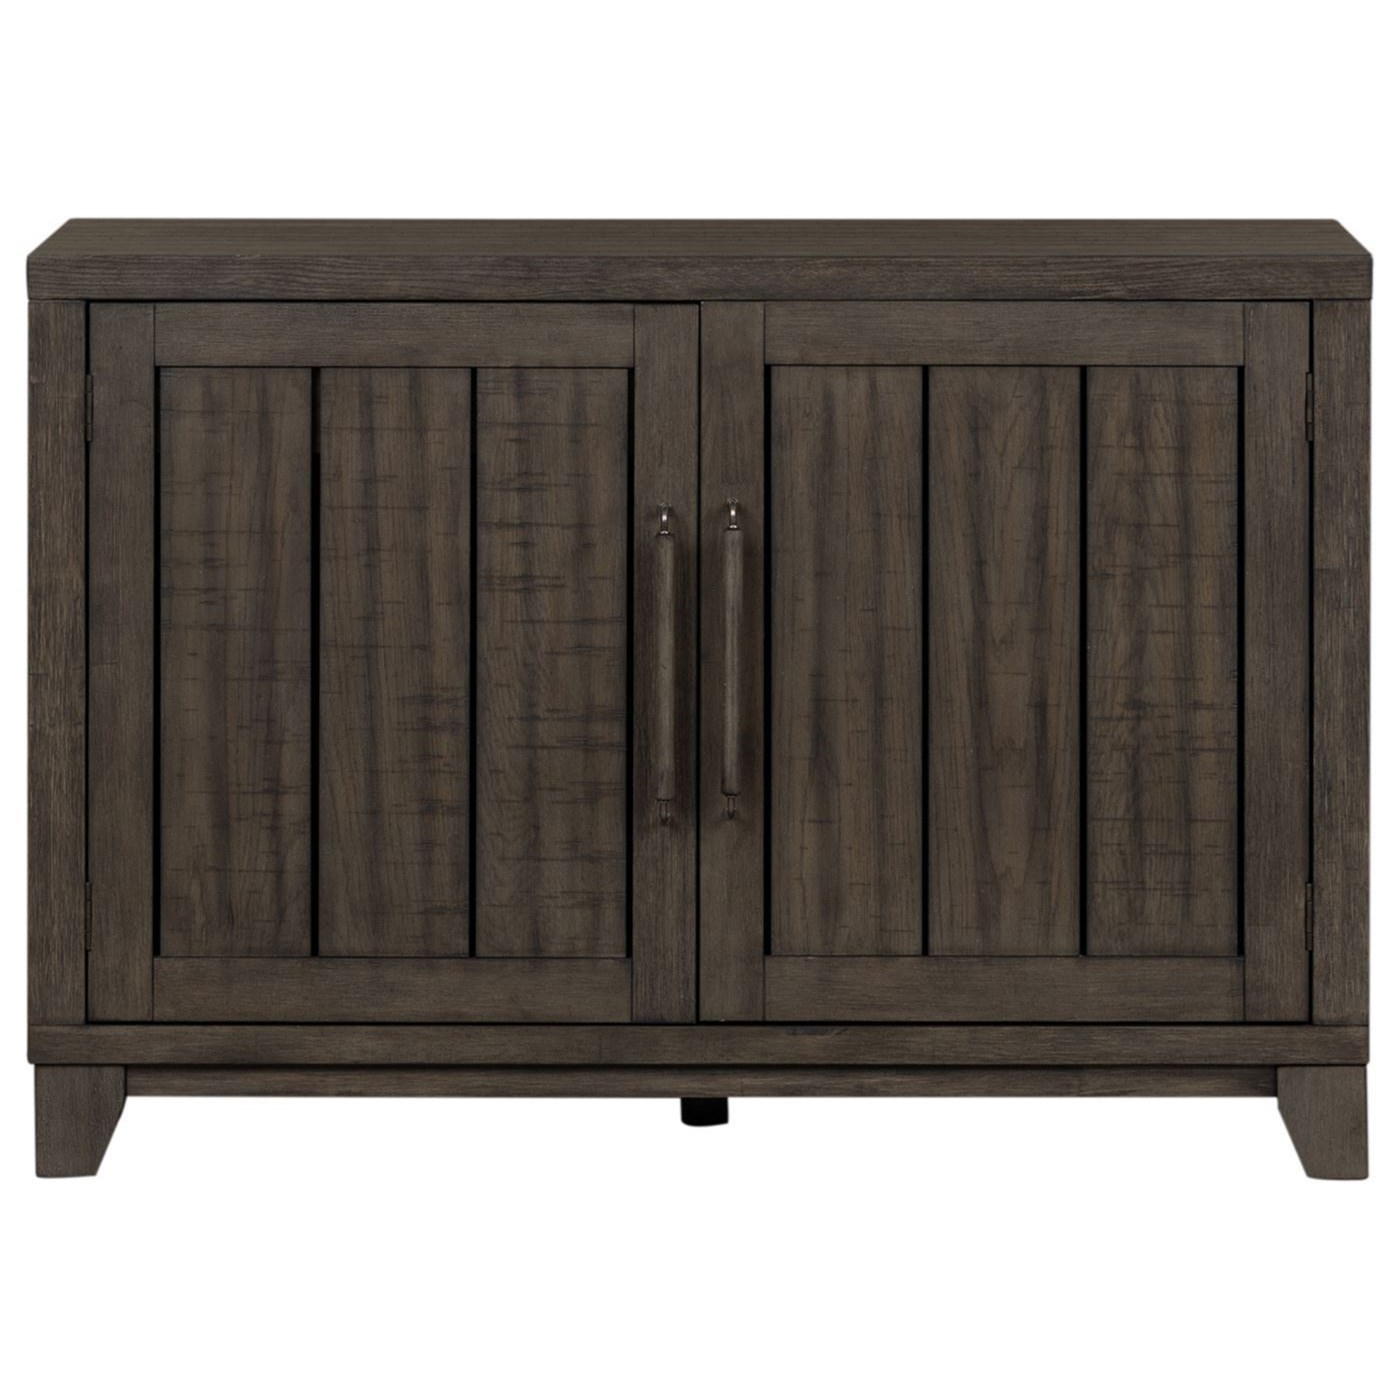 Crescent Creek Buffet by Libby at Walker's Furniture